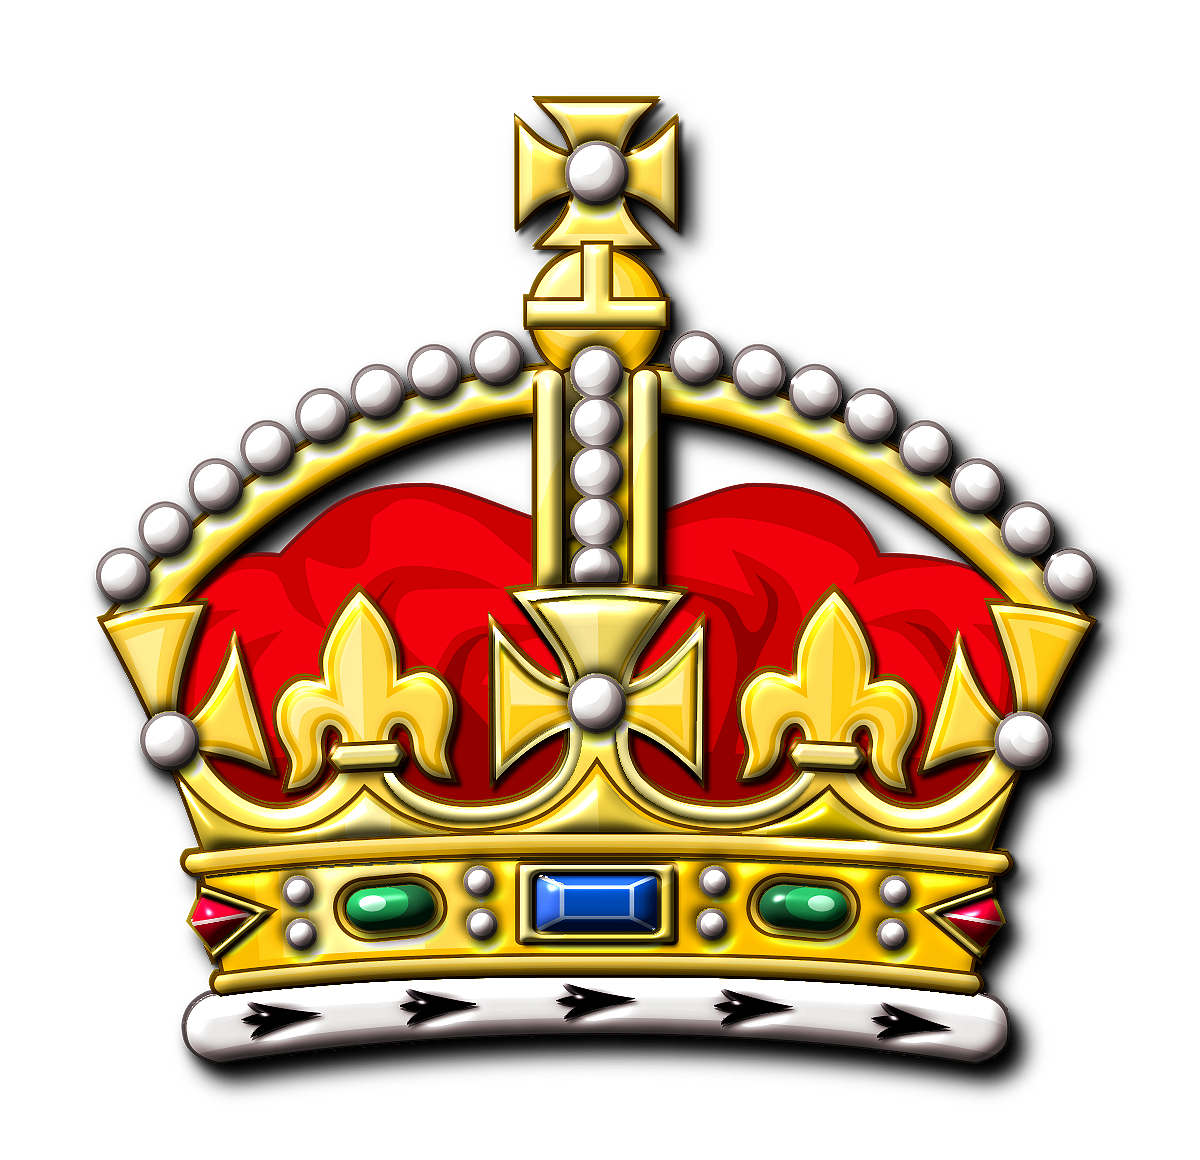 Kc royals crown clipart clipart royalty free download King Crown Clipart - Clipart Kid clipart royalty free download